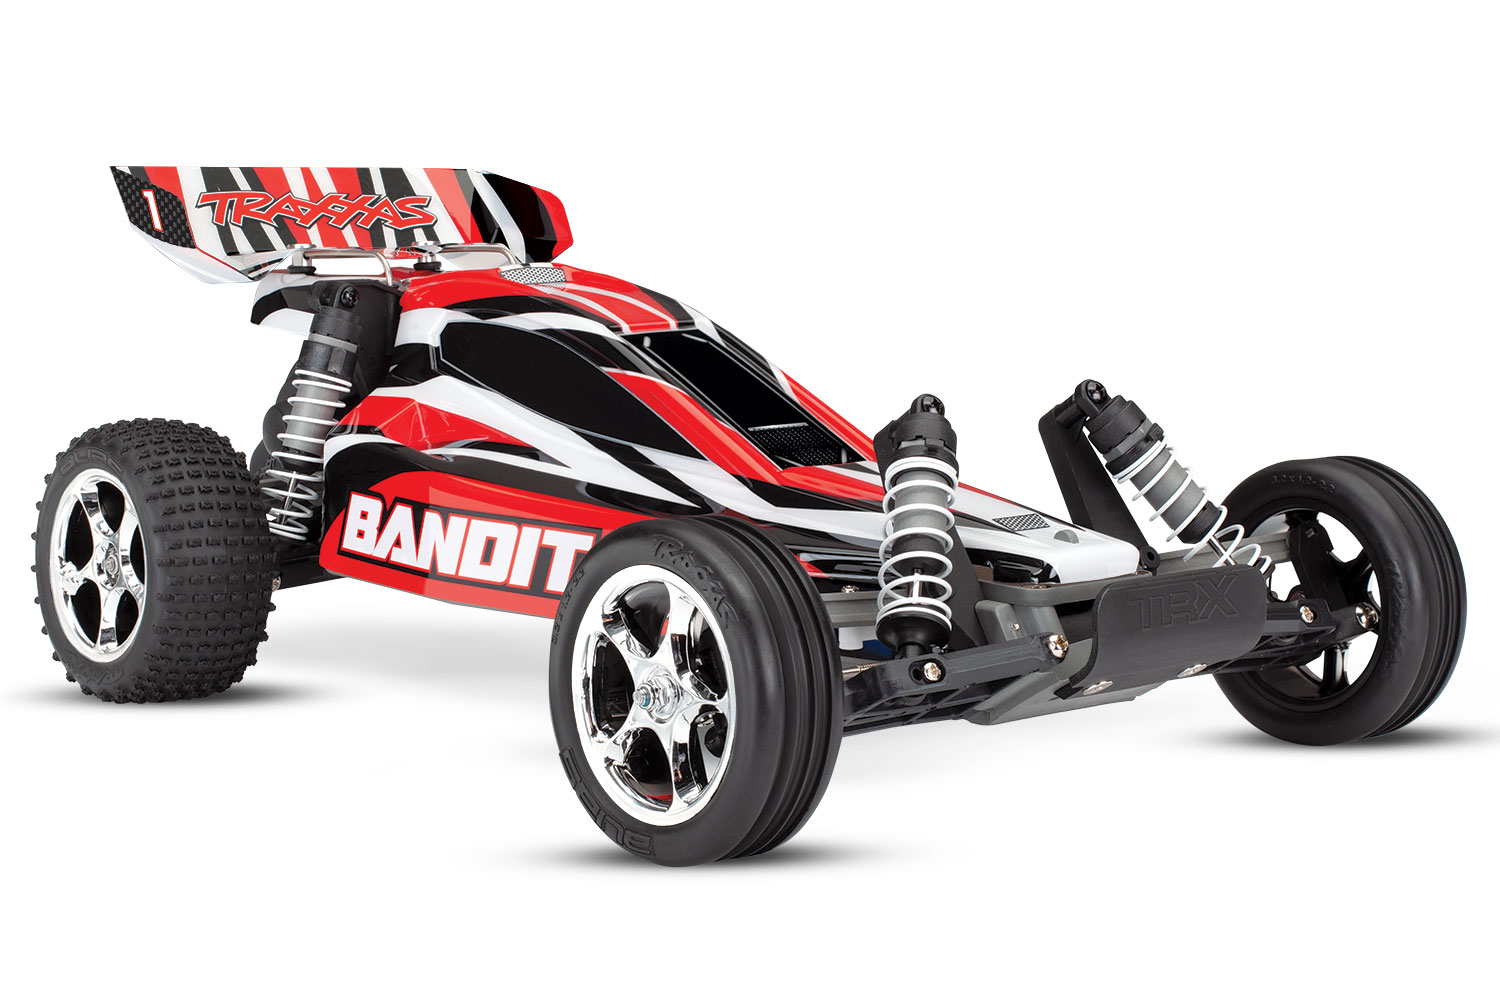 Traxxas Bandit 2WD 1/10 RTR TQ – NO Battery / Charger 24054-4 (RED)